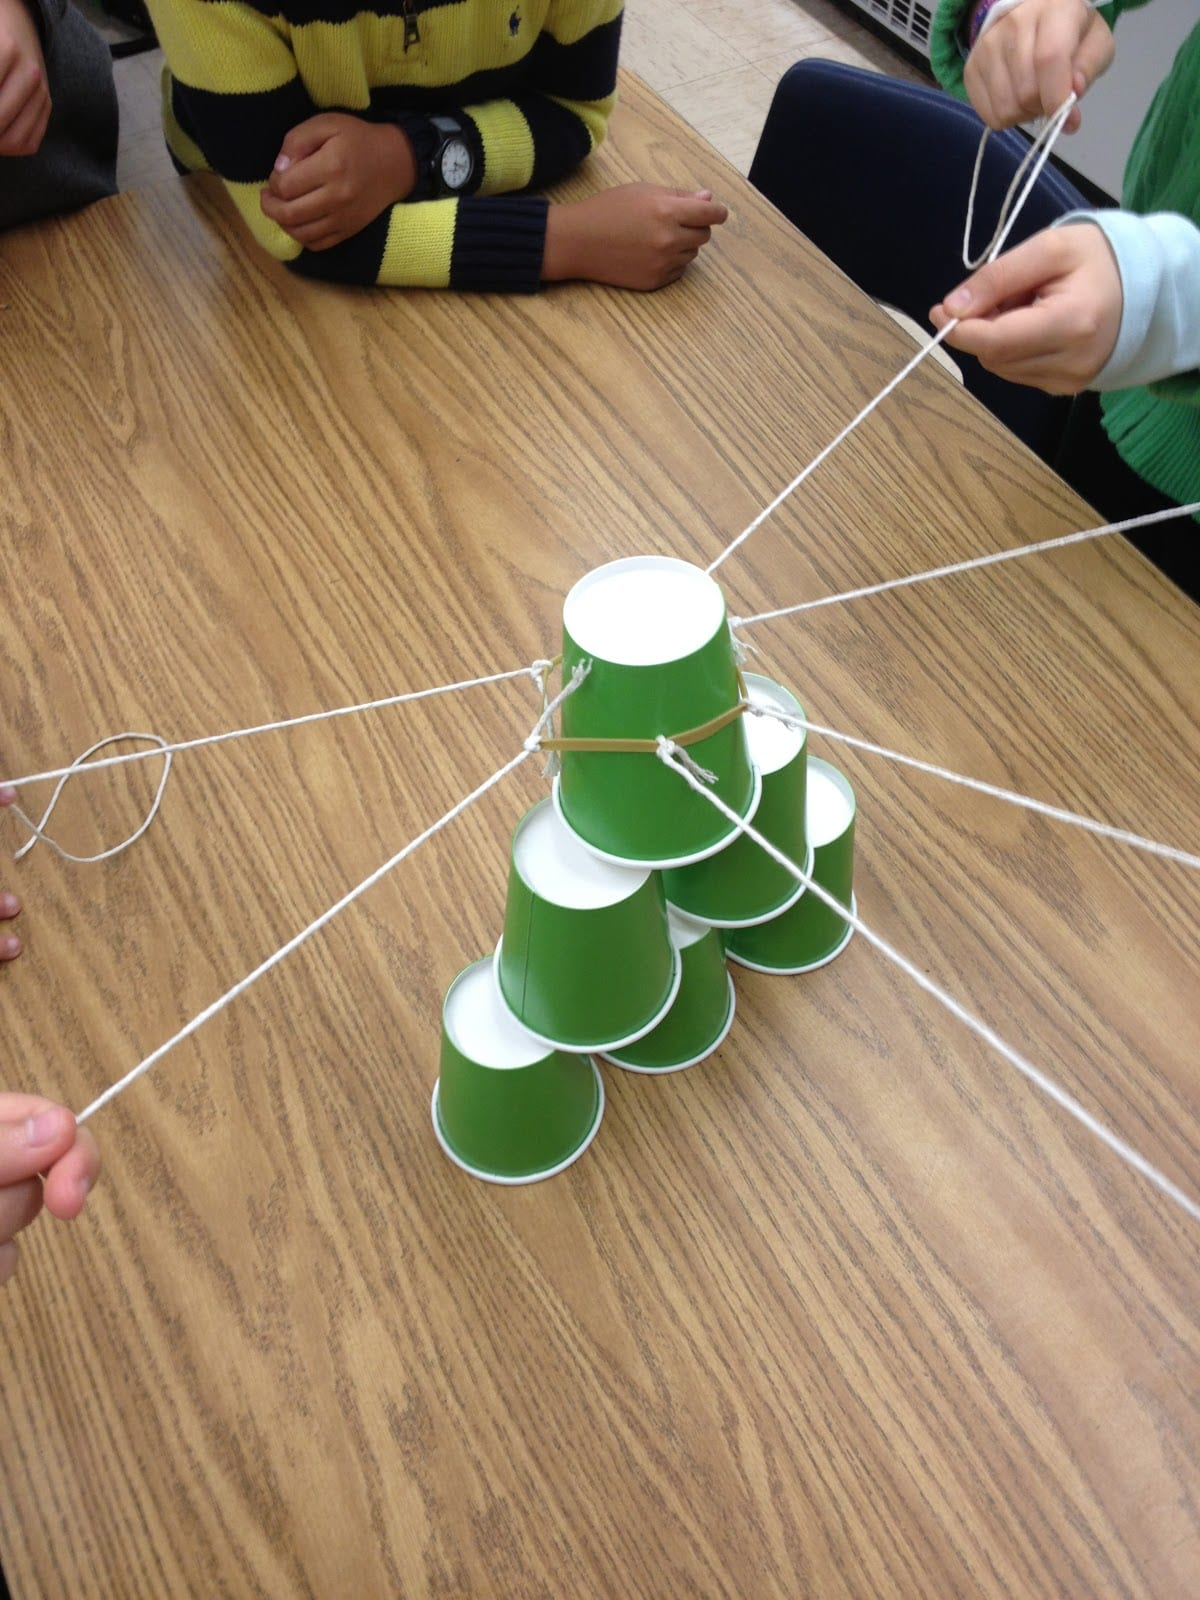 Team-Building Games - 21 Ways to Integrate Social-Emotional Learning